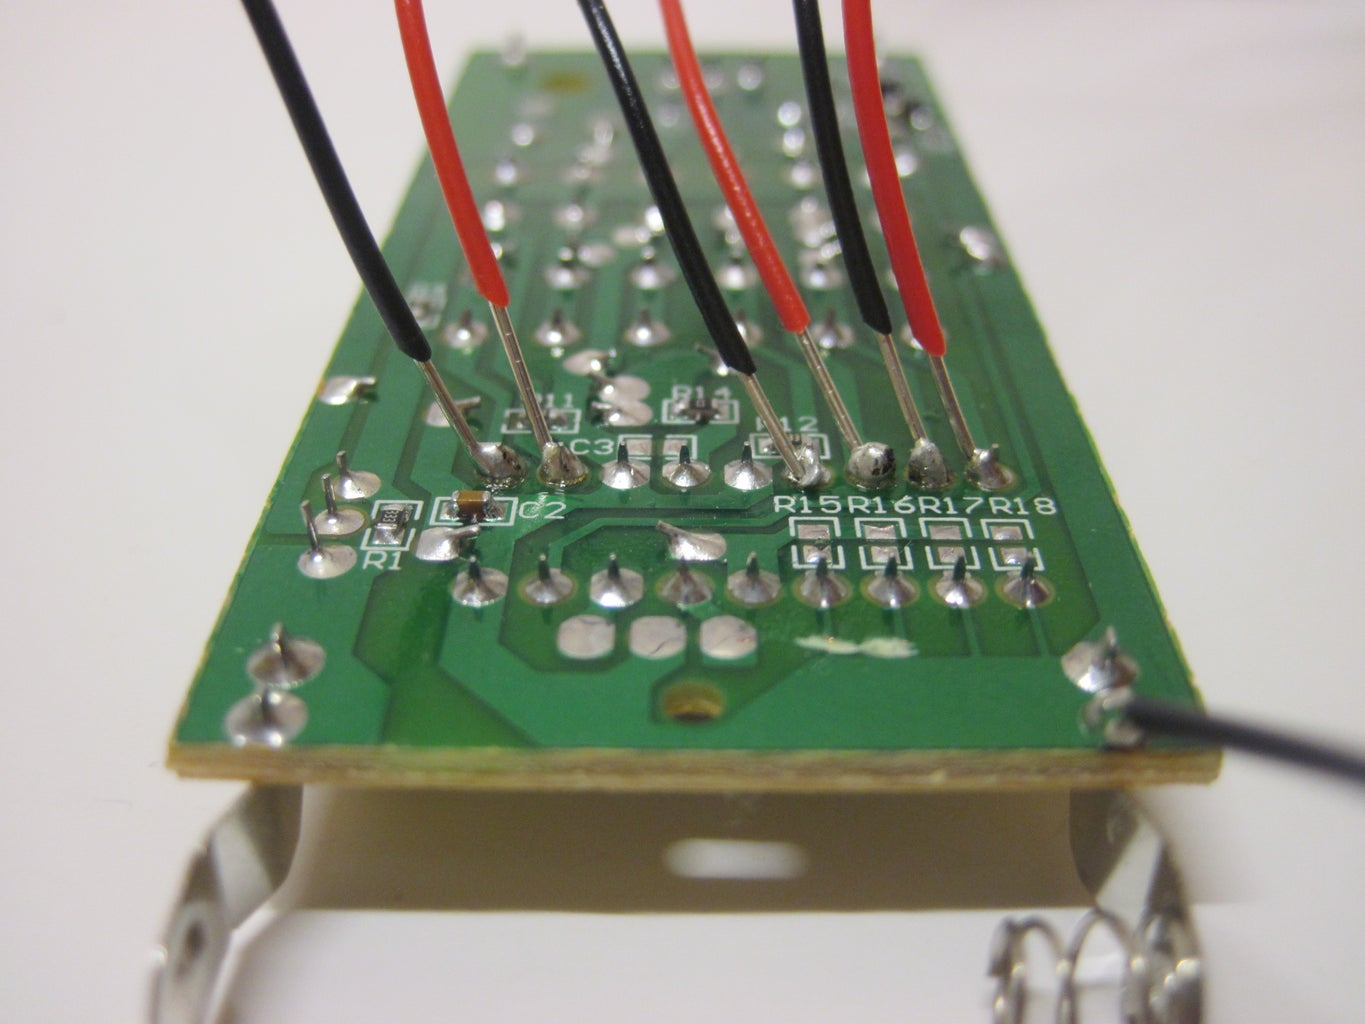 Solder Jumper Wires to the Remote